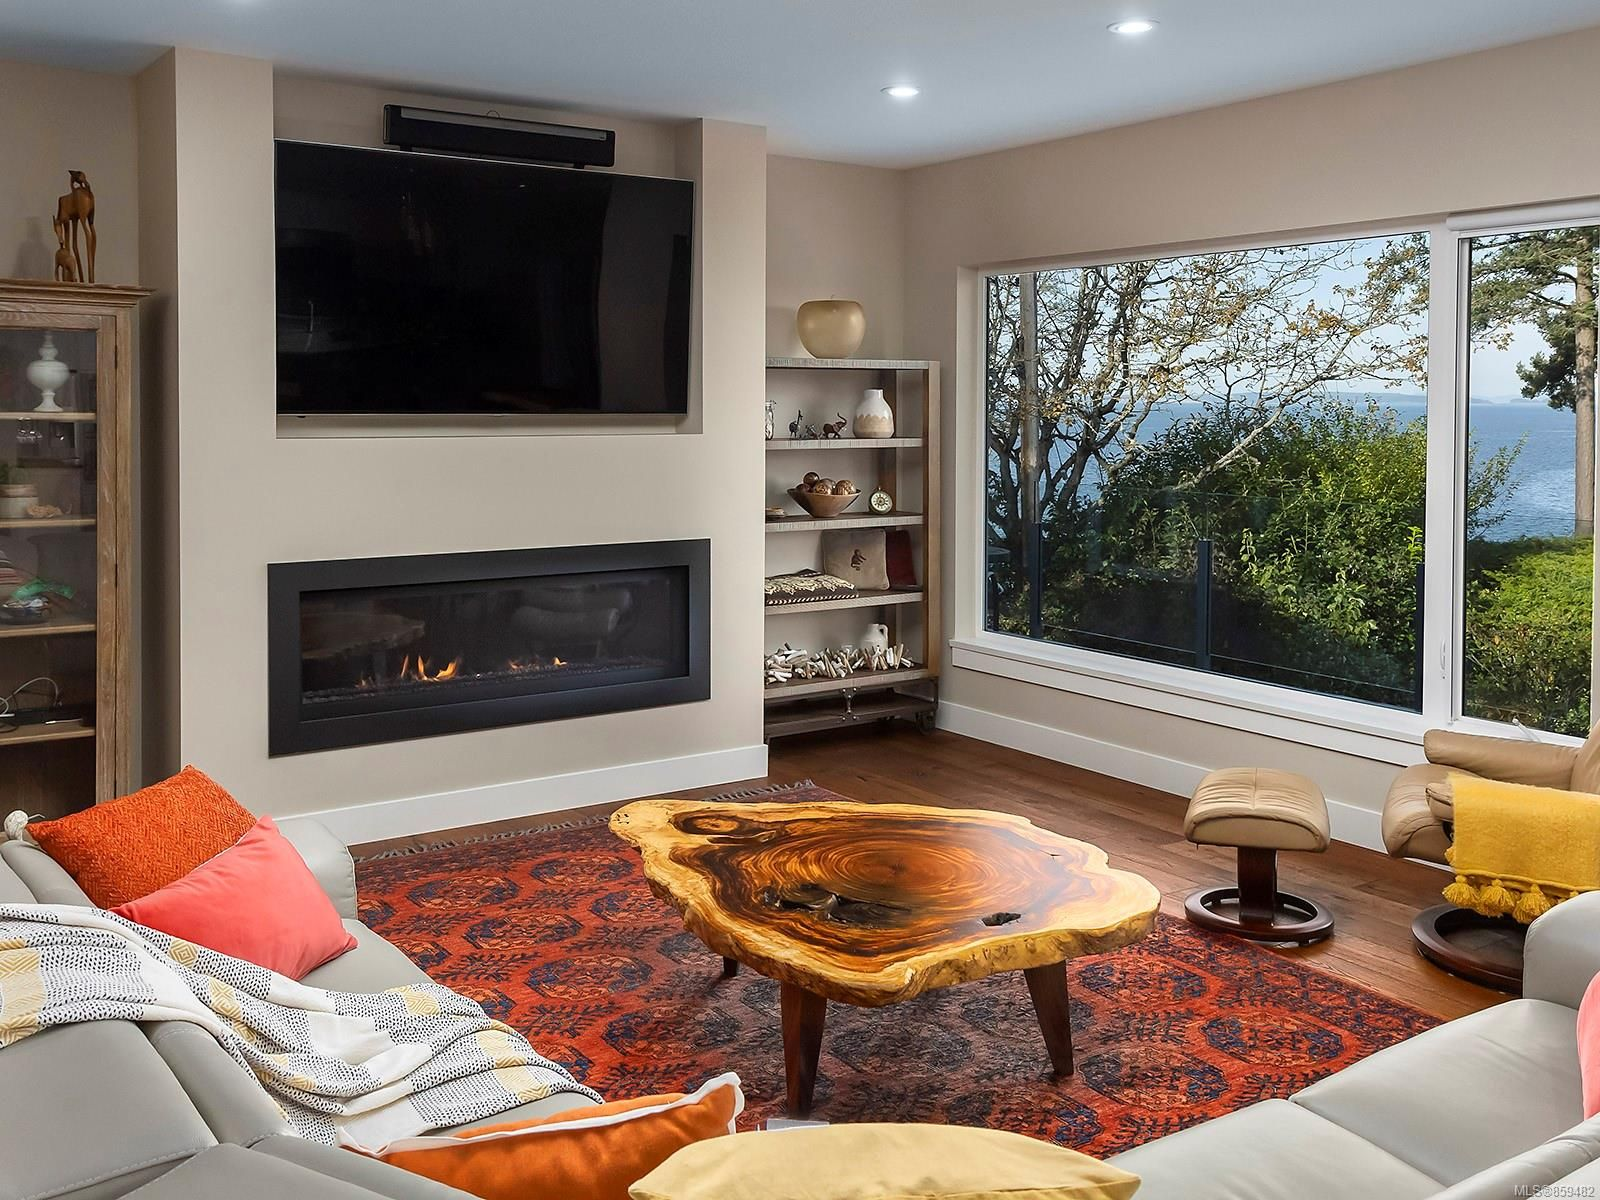 Photo 6: Photos: 4086 Monarch Pl in : SE Arbutus House for sale (Saanich East)  : MLS®# 859482